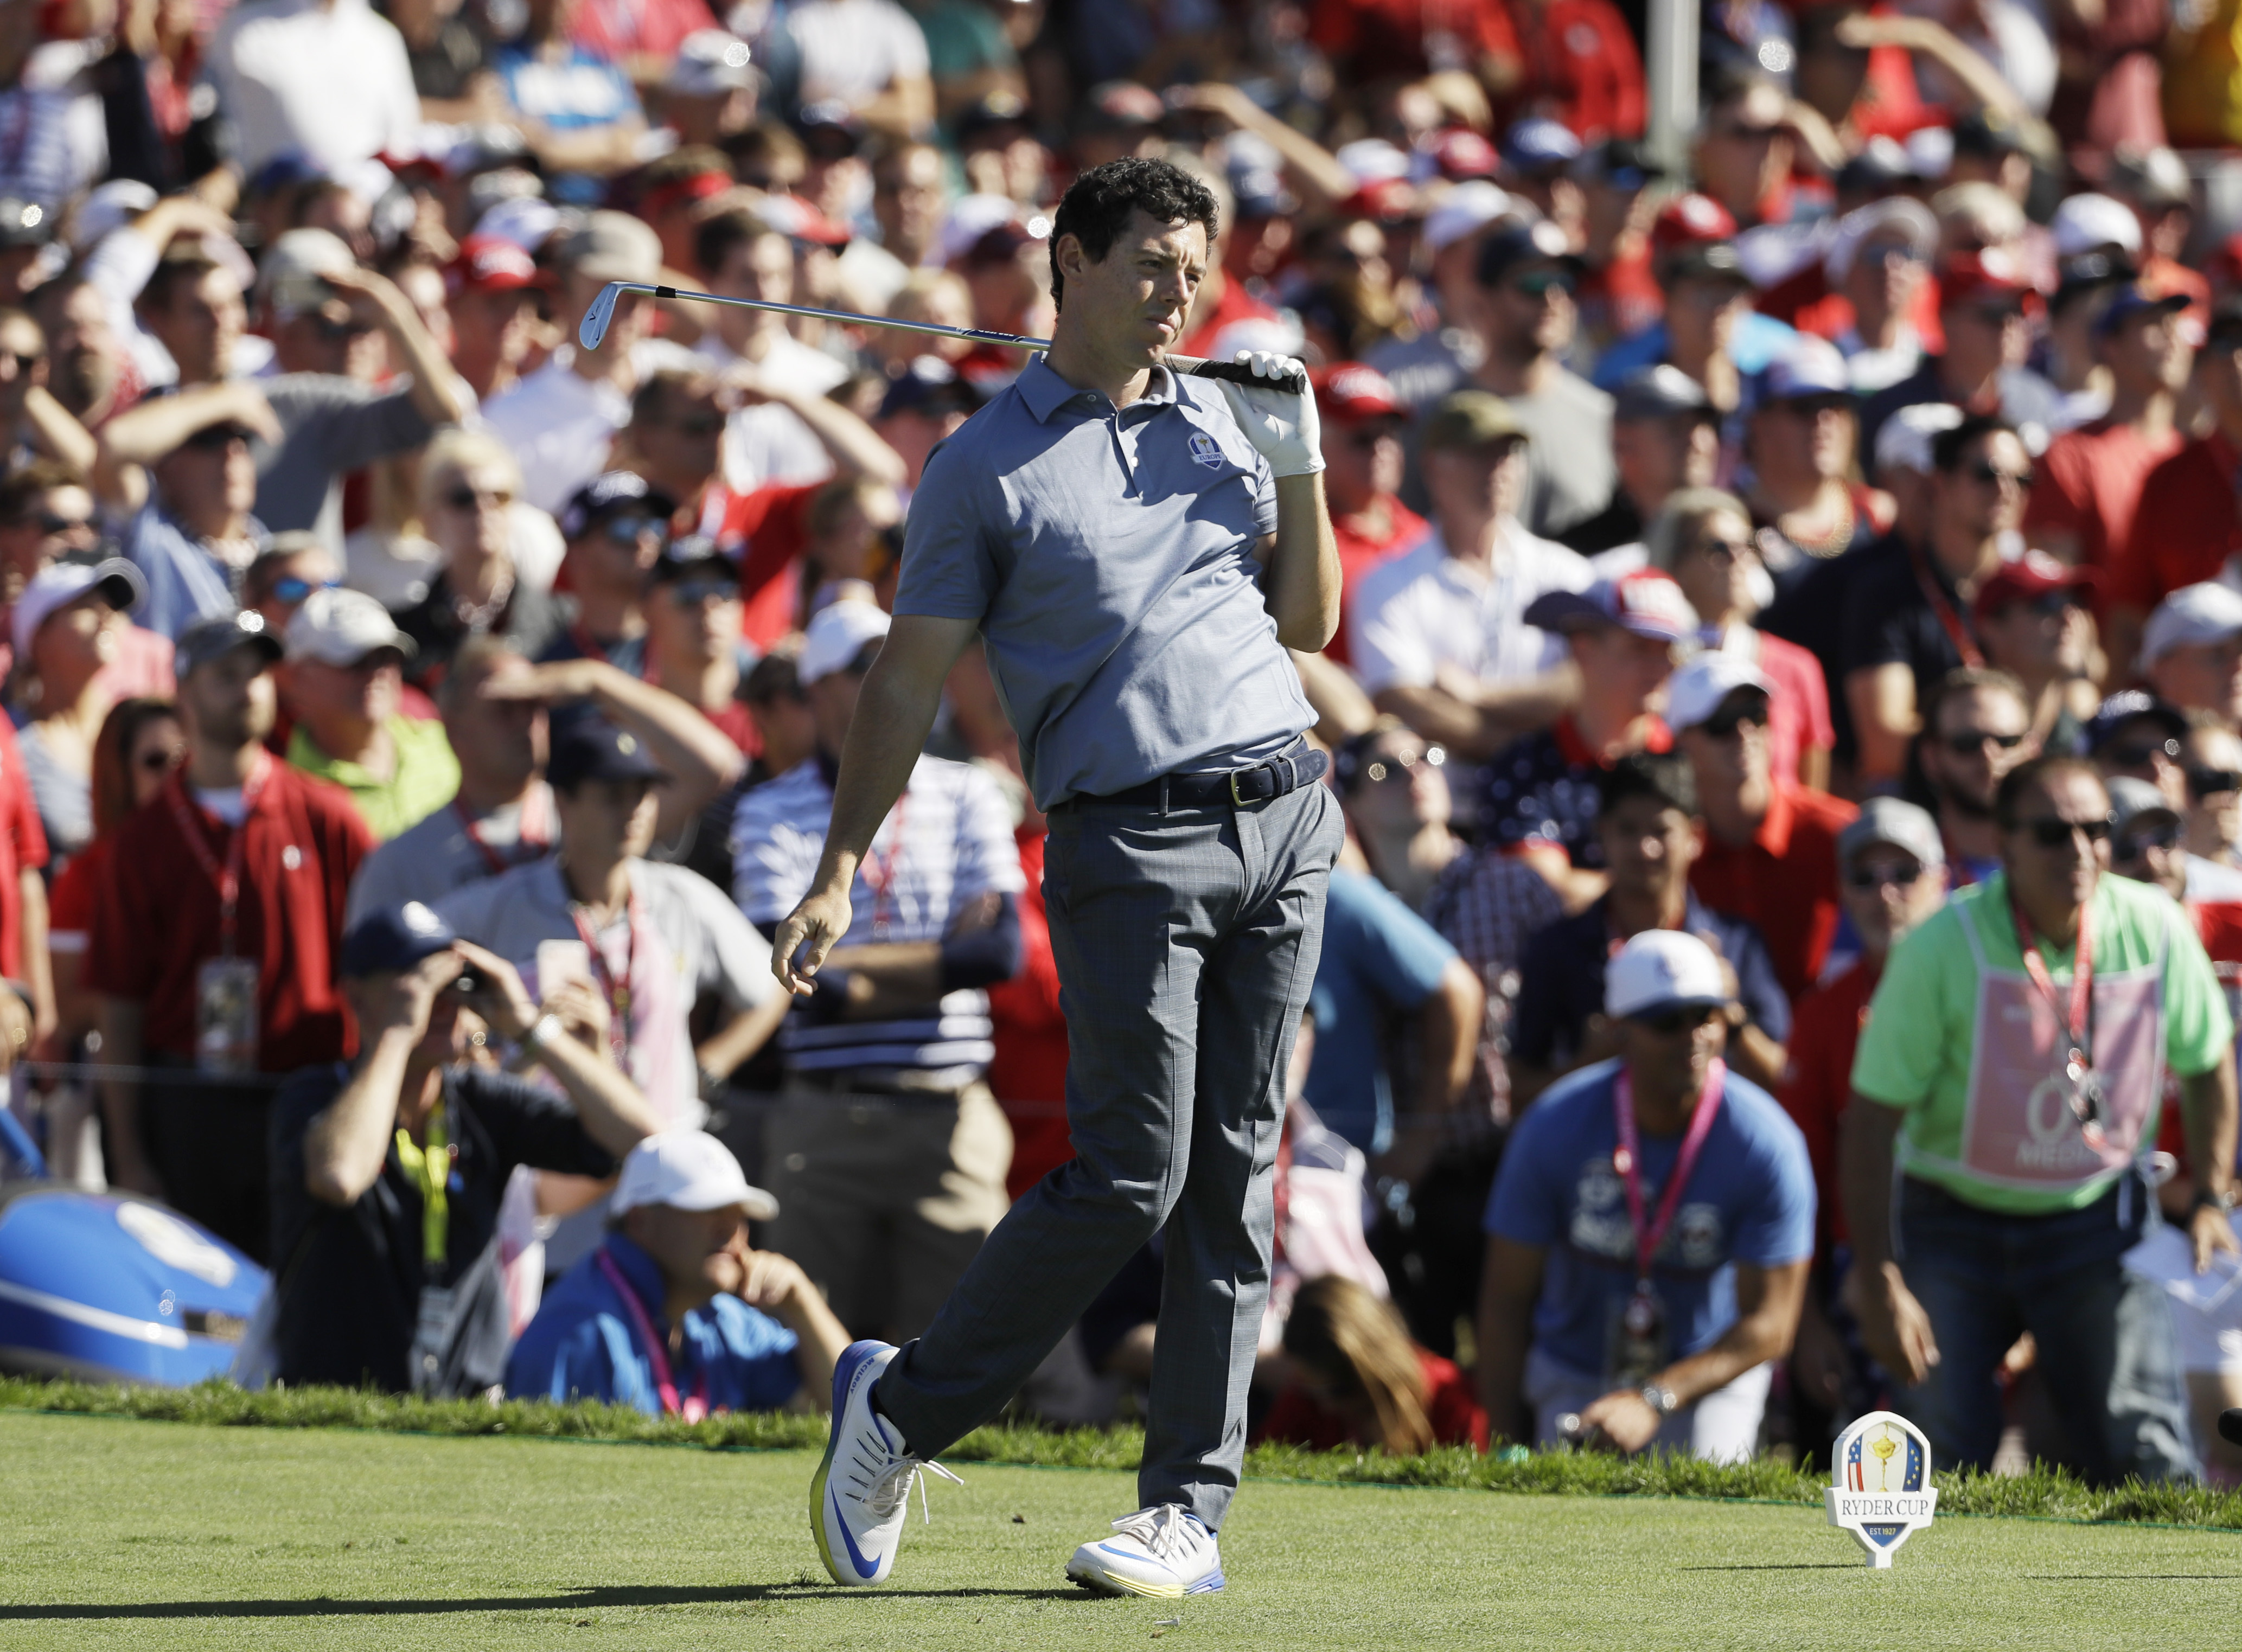 Europes Rory McIlroy watches his shot on the 17th hole during a singles match at the Ryder Cup golf tournament Sunday, Oct. 2, 2016, at Hazeltine National Golf Club in Chaska, Minn. (AP Photo/David J. Phillip)